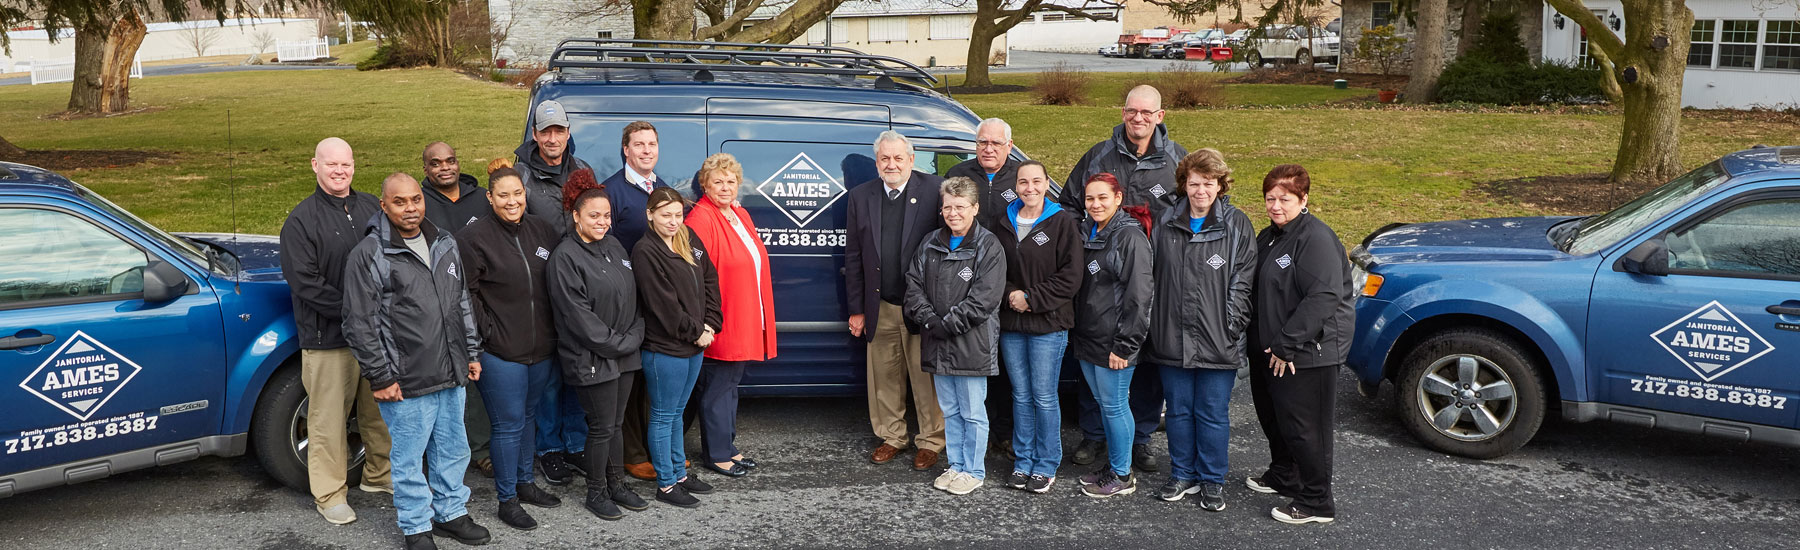 Ames Janitorial Services team_Central PA